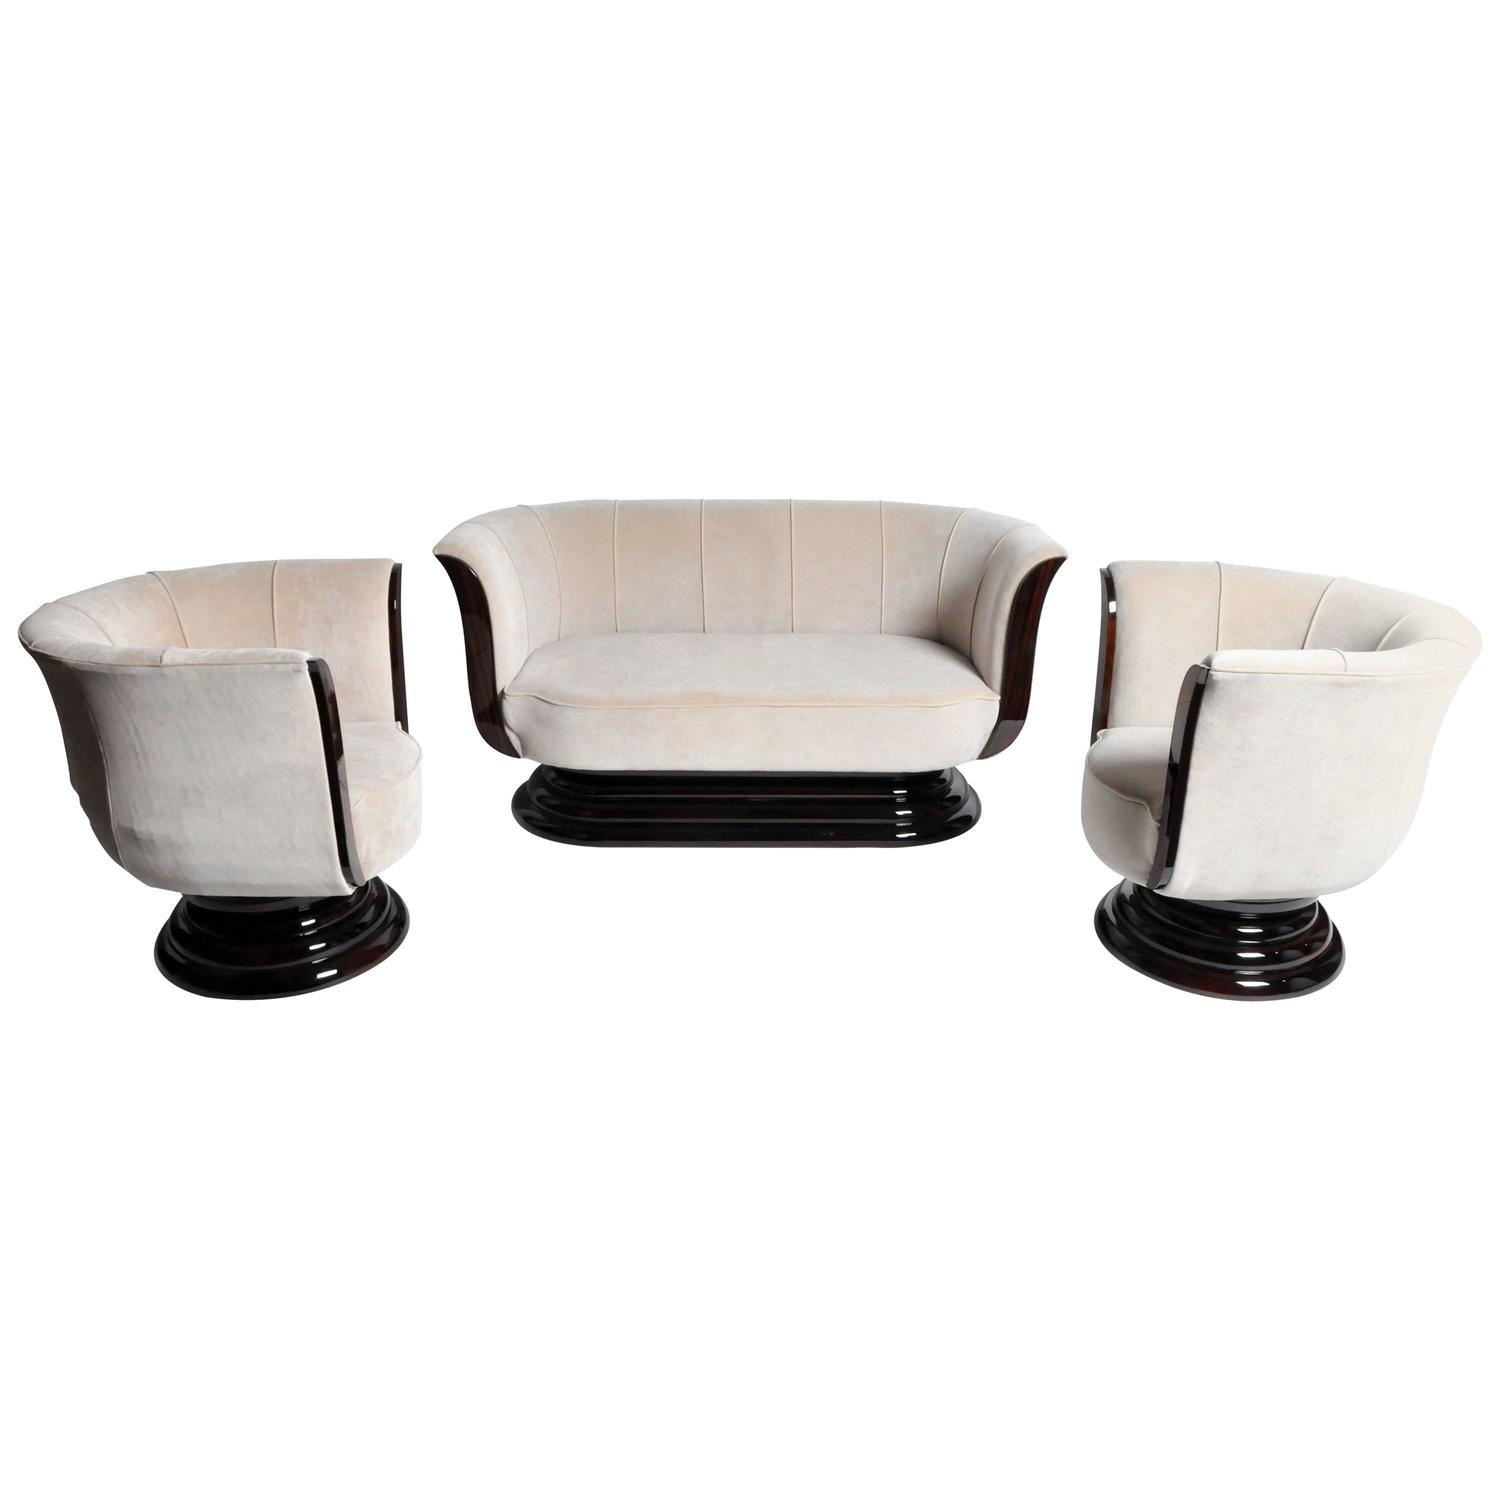 Art Deco Sofas 123 For Sale at 1stdibs